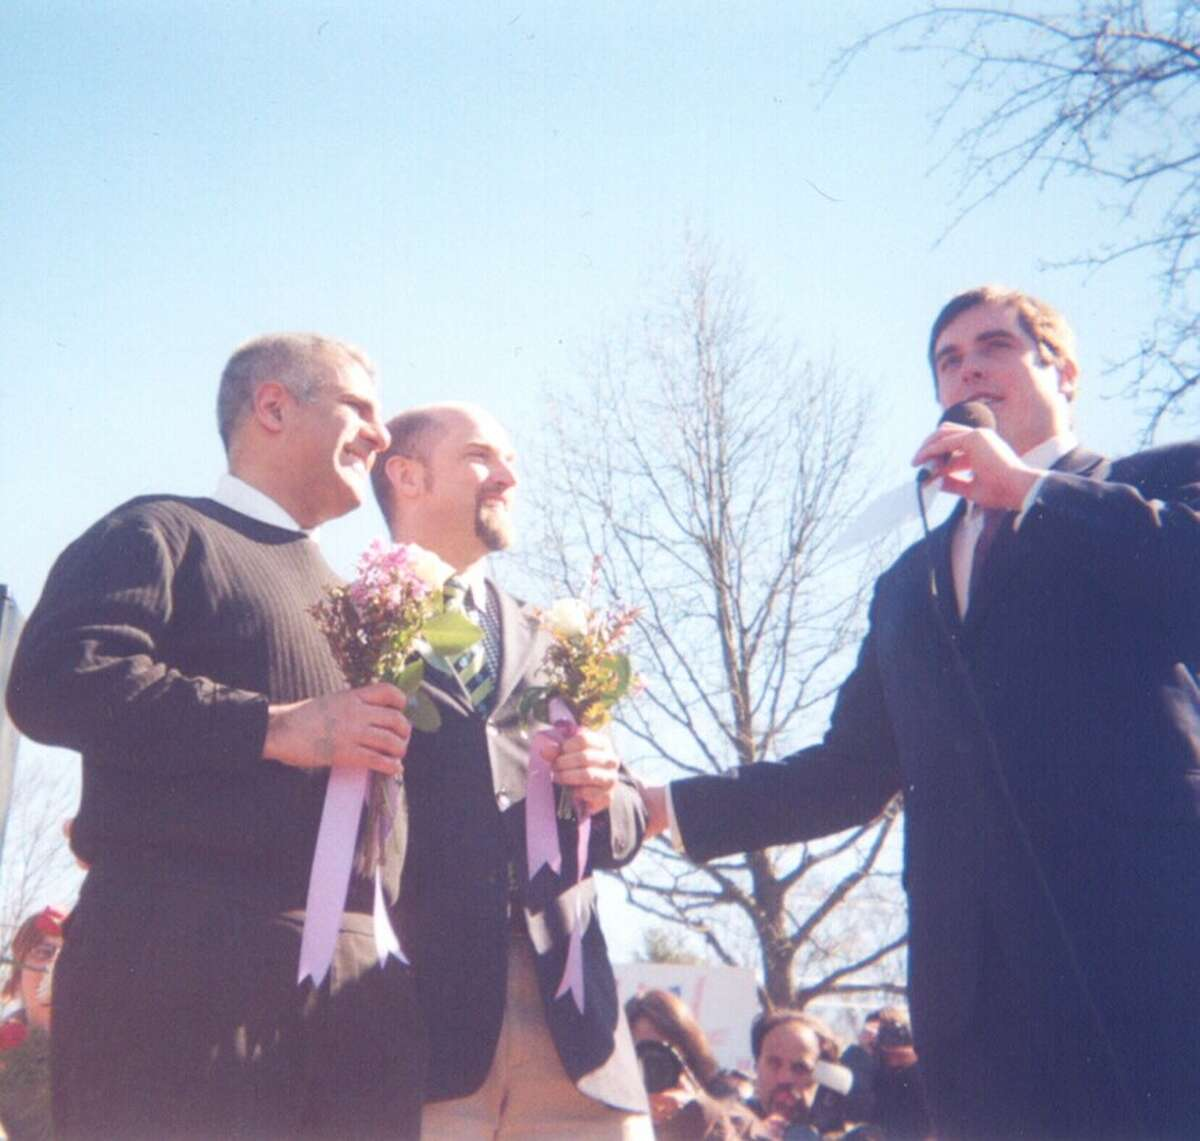 Jay Blotcher and Brook Garrett, left, were married at New Paltz's Peace Park in 2004 by the newly elected mayor, Jason West, right. That day, West married 25 same-sex couples - seven years before gay marriage was legal in the state.